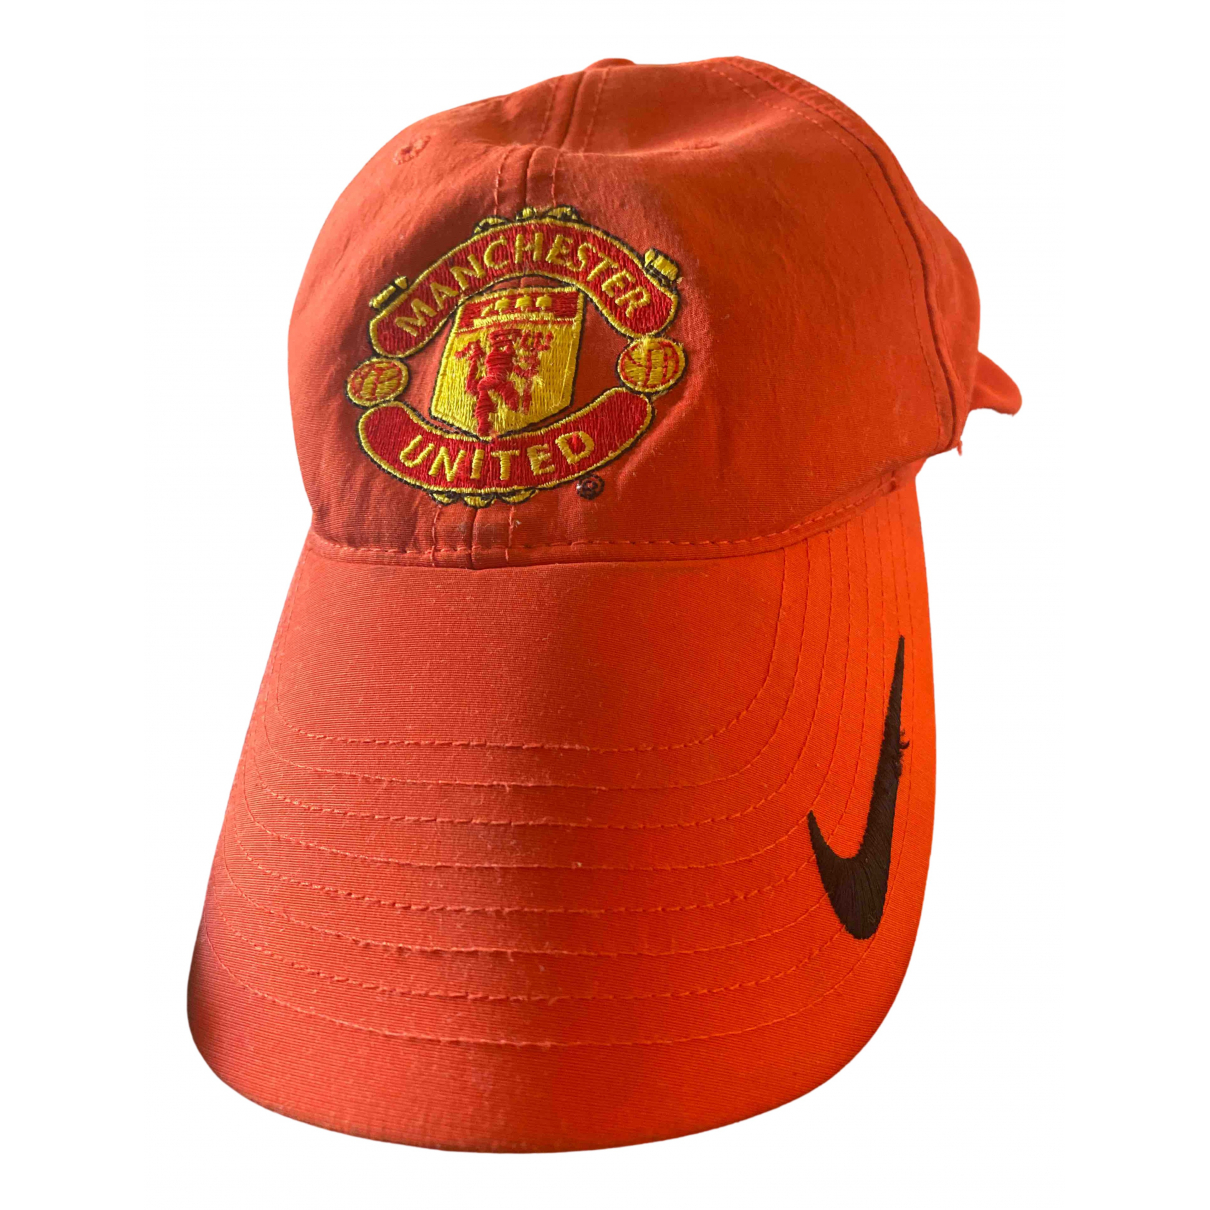 Nike \N Red Cotton hat & pull on hat for Men 54 cm